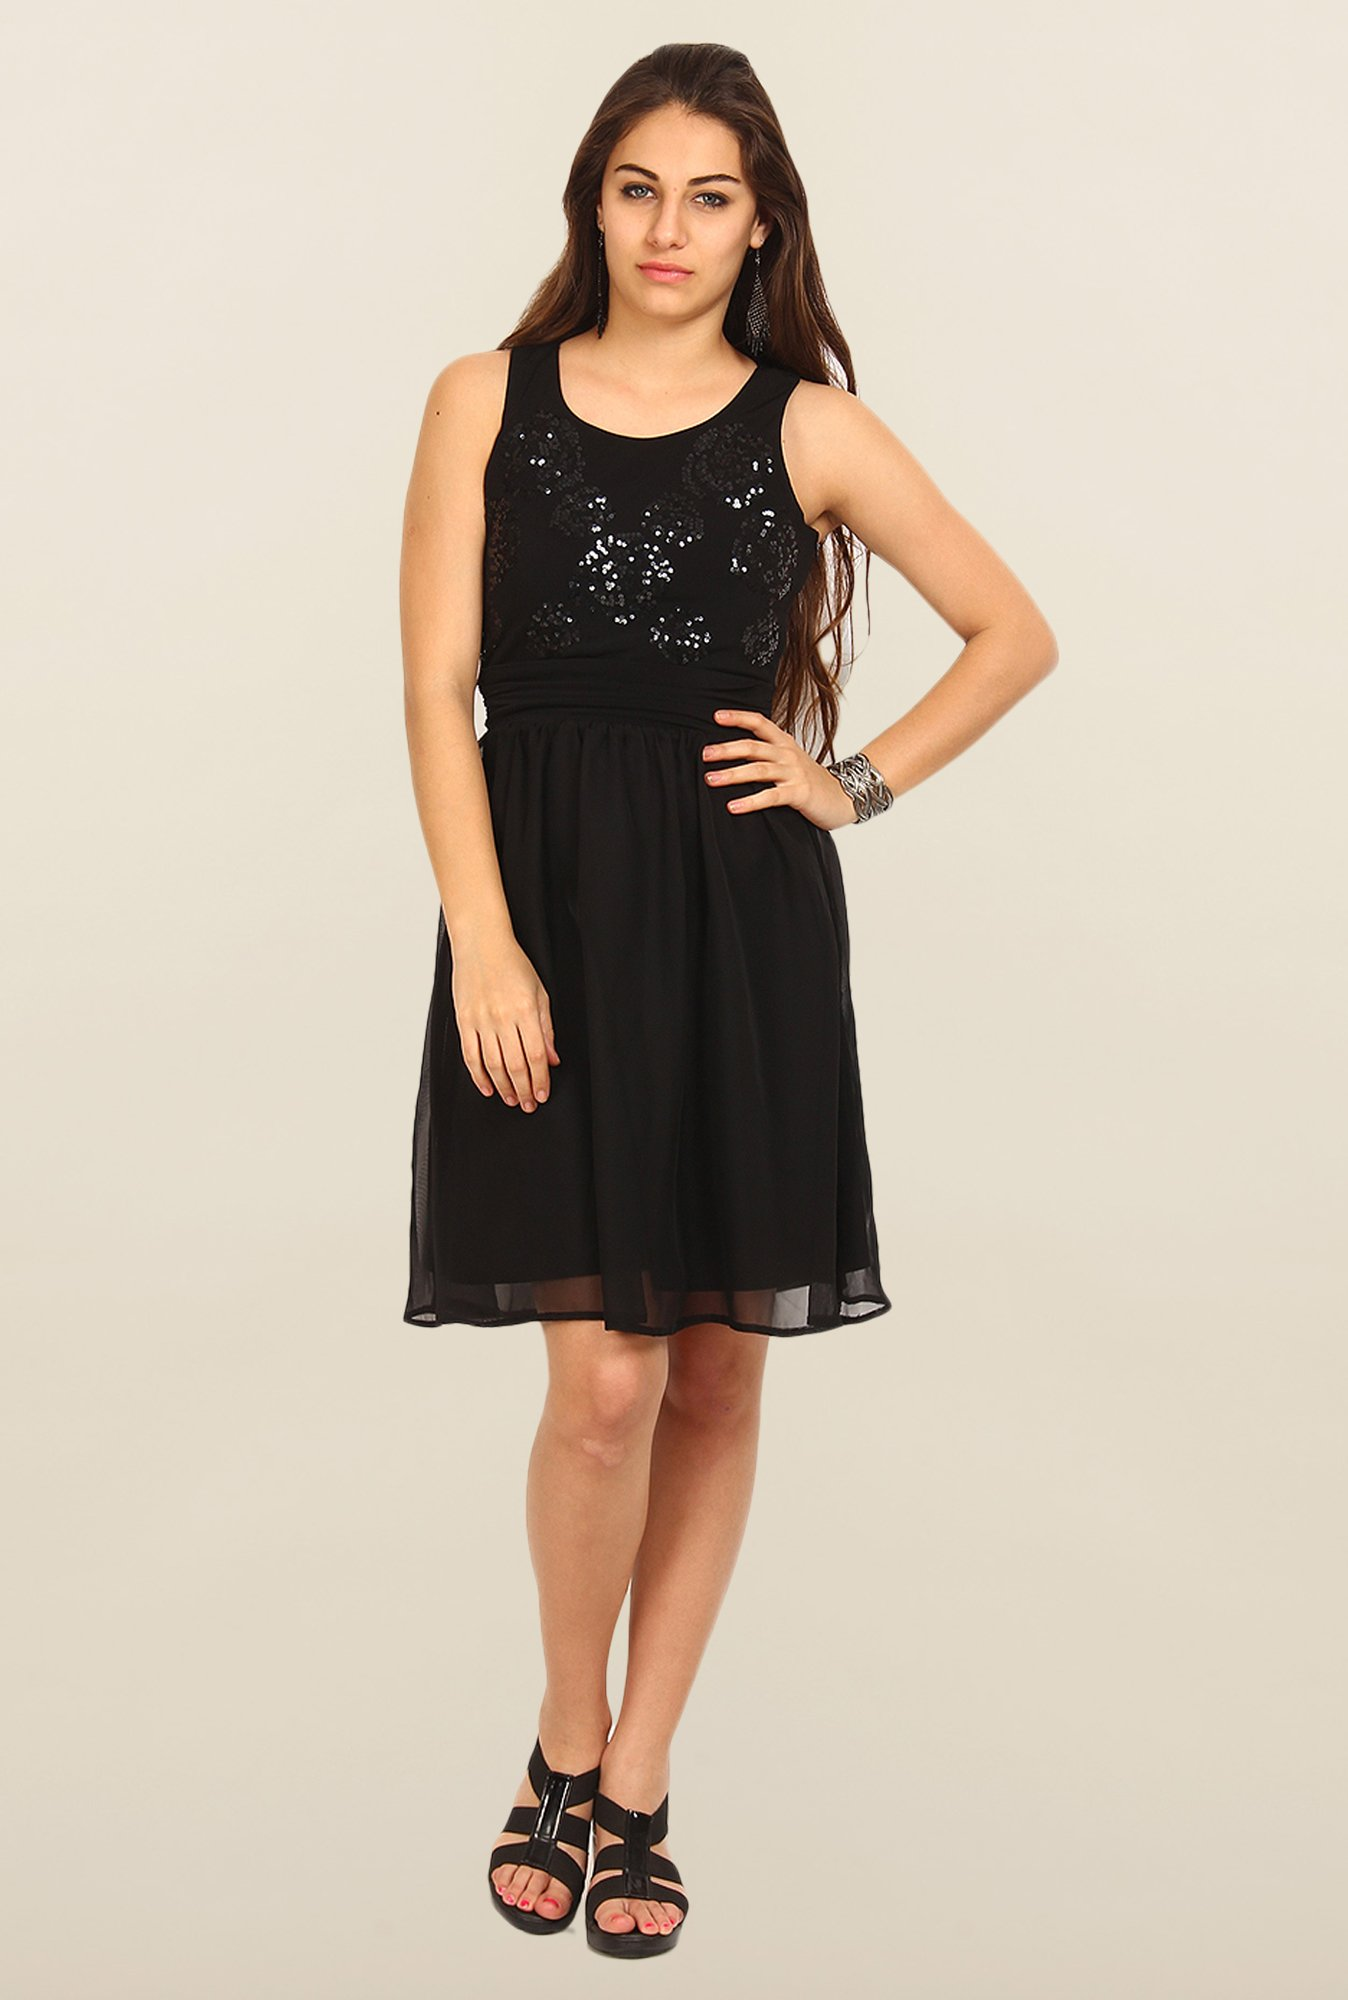 Avirate Black Solid A-Line Dress